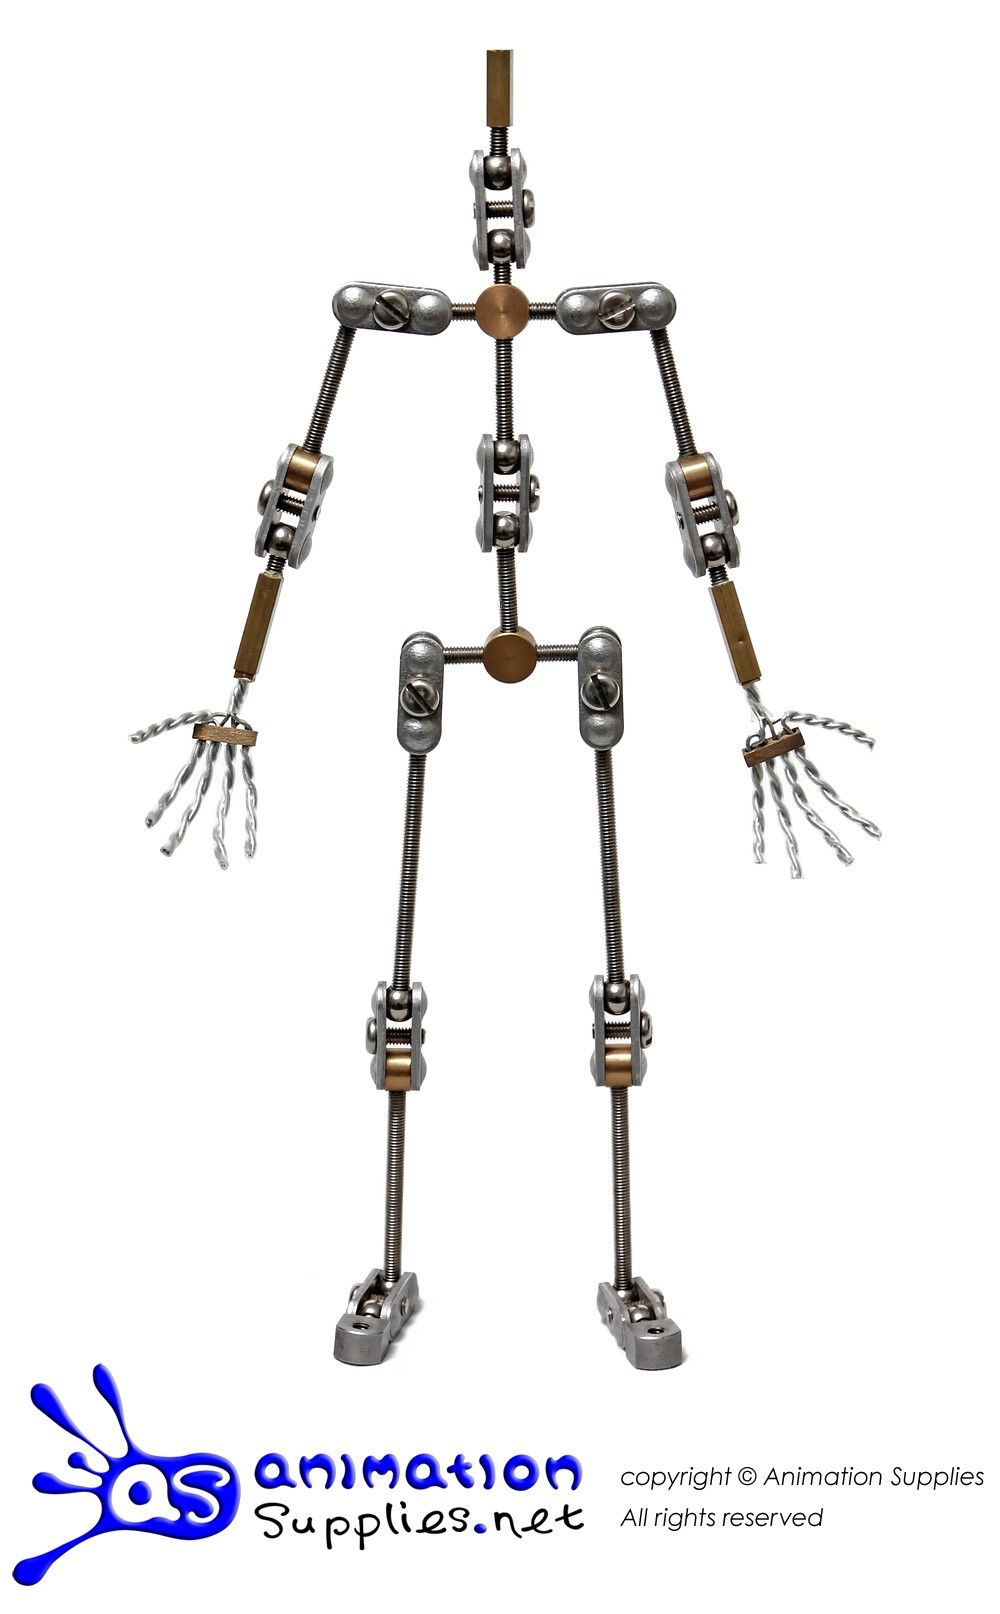 our 4th generation standard armature u2122 offers exceptional